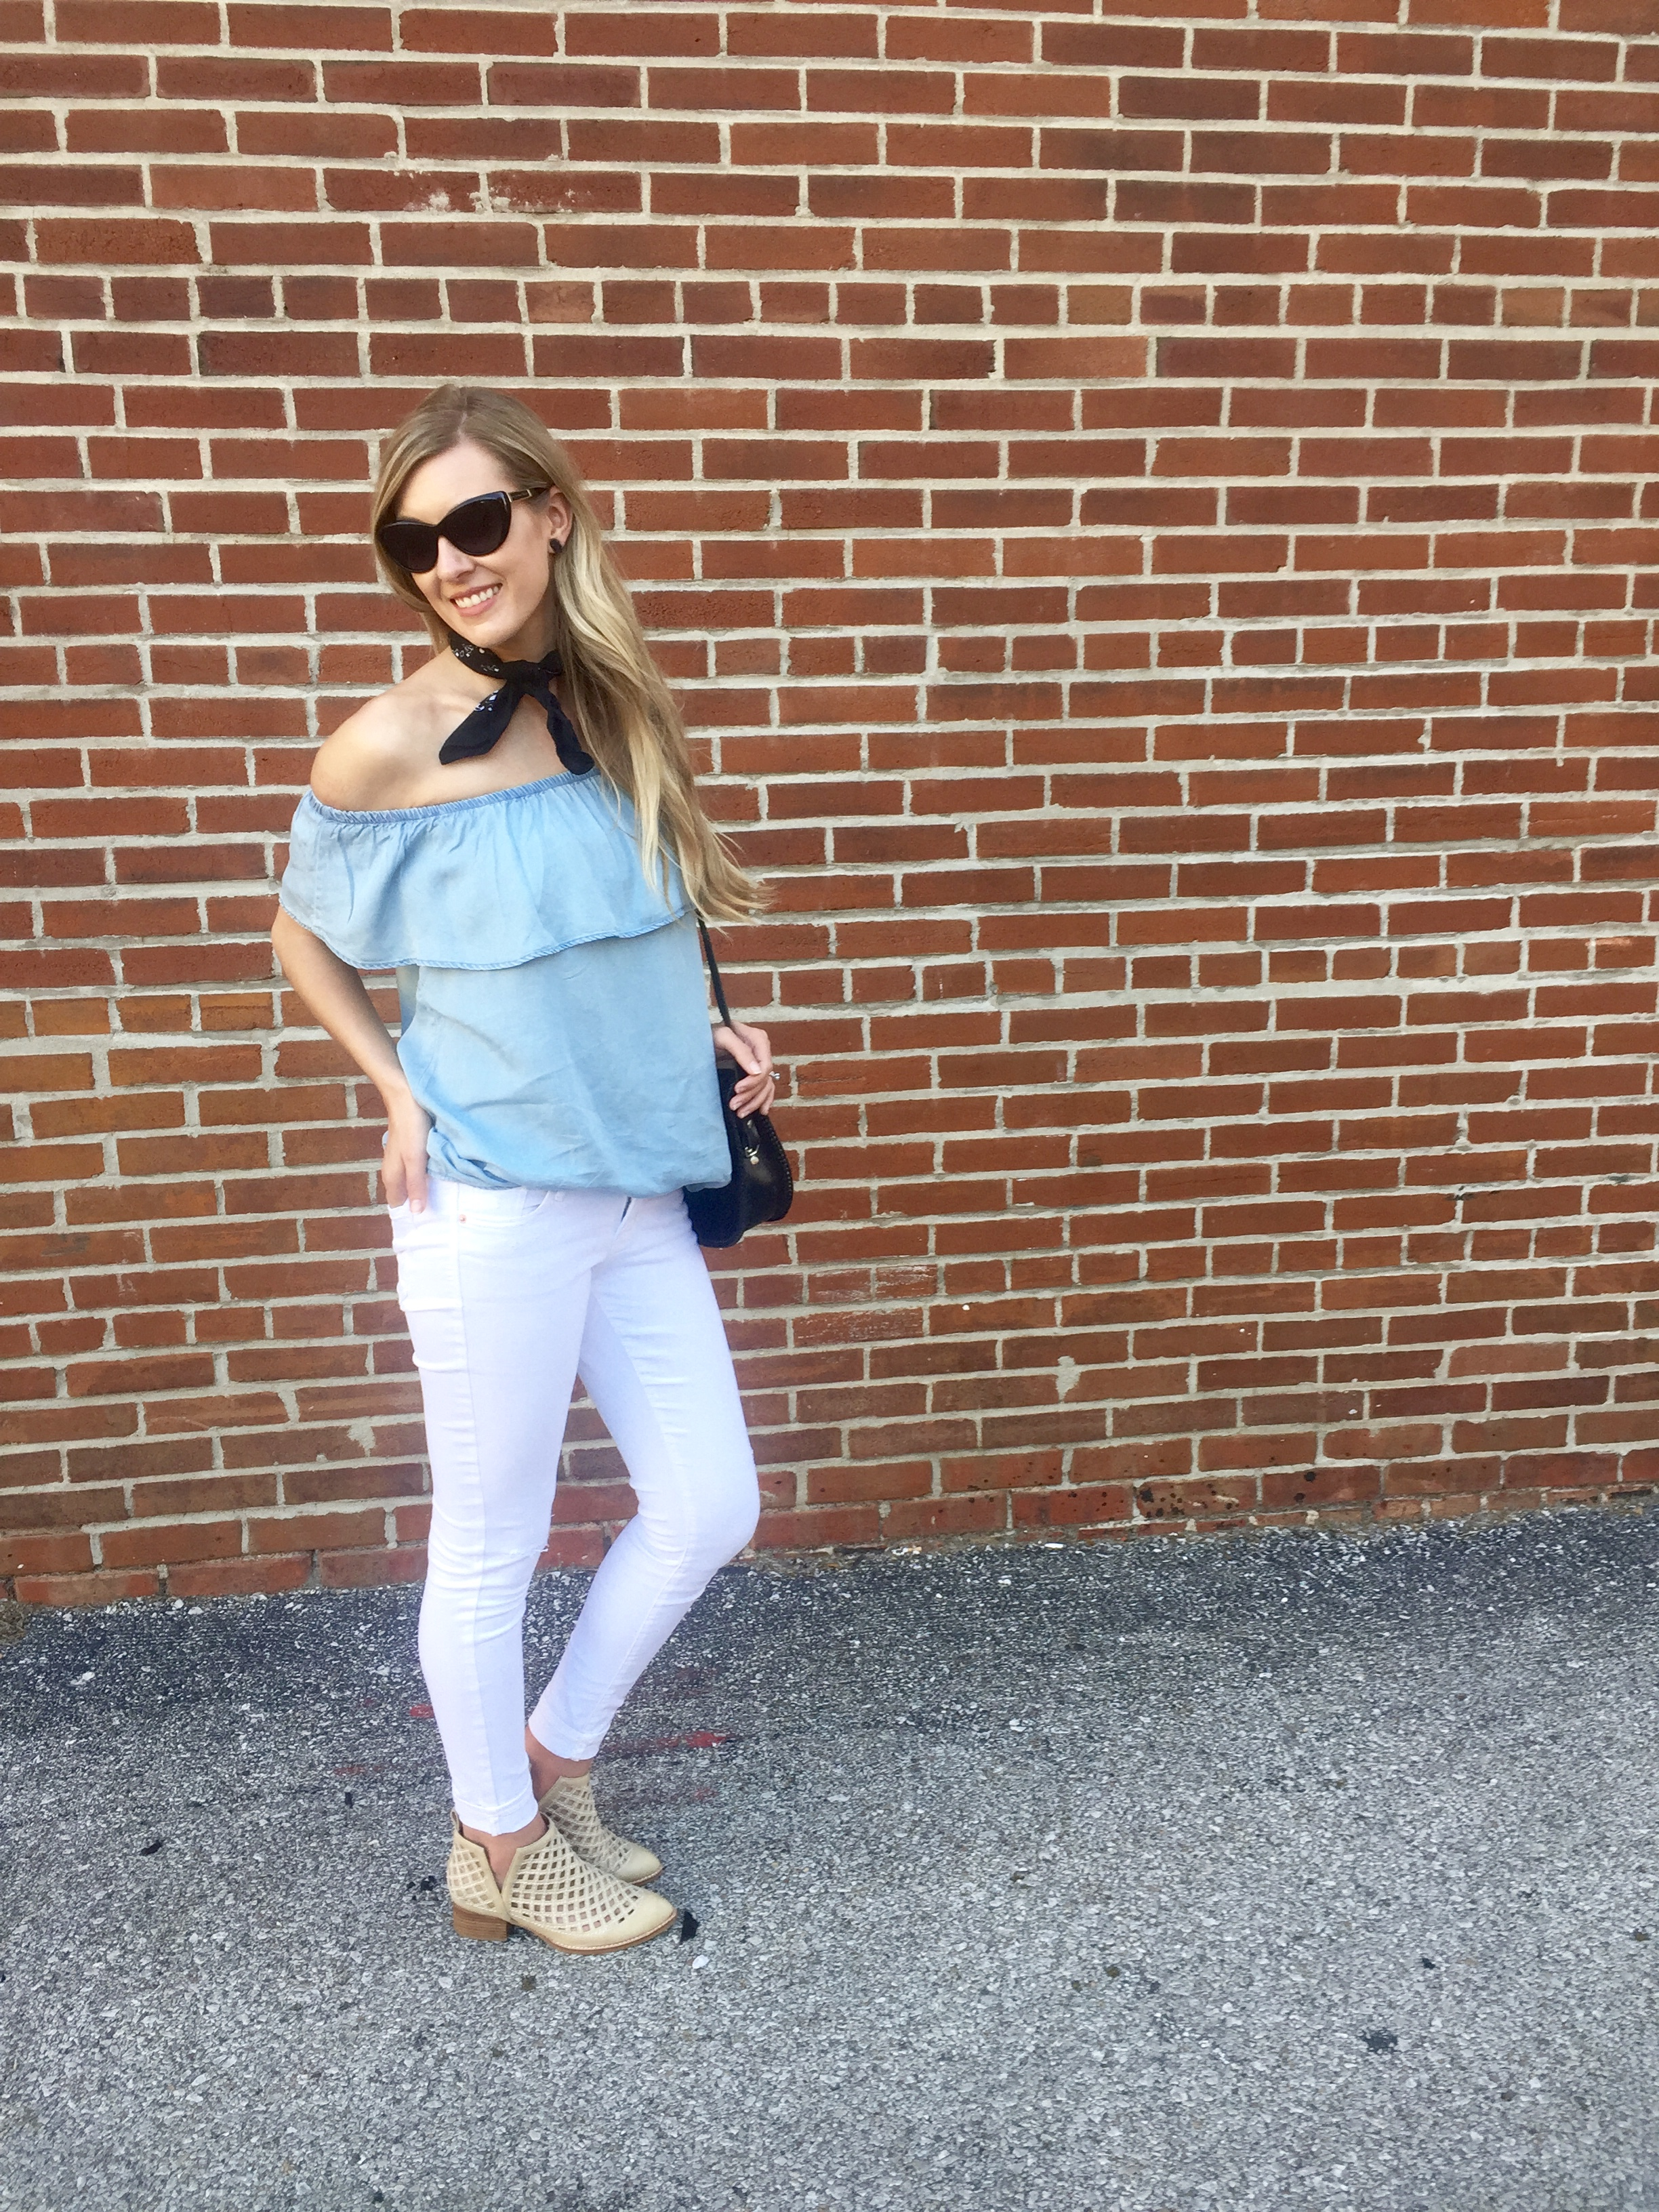 Sunnies Marc Jacobs old similar  here  // Chambray shirt similar  here  // White denim similar  here  // Neck scarf  Hobby Lobby  //  Jeffrey Campbell booties  // Purse is an antique store find similar  here